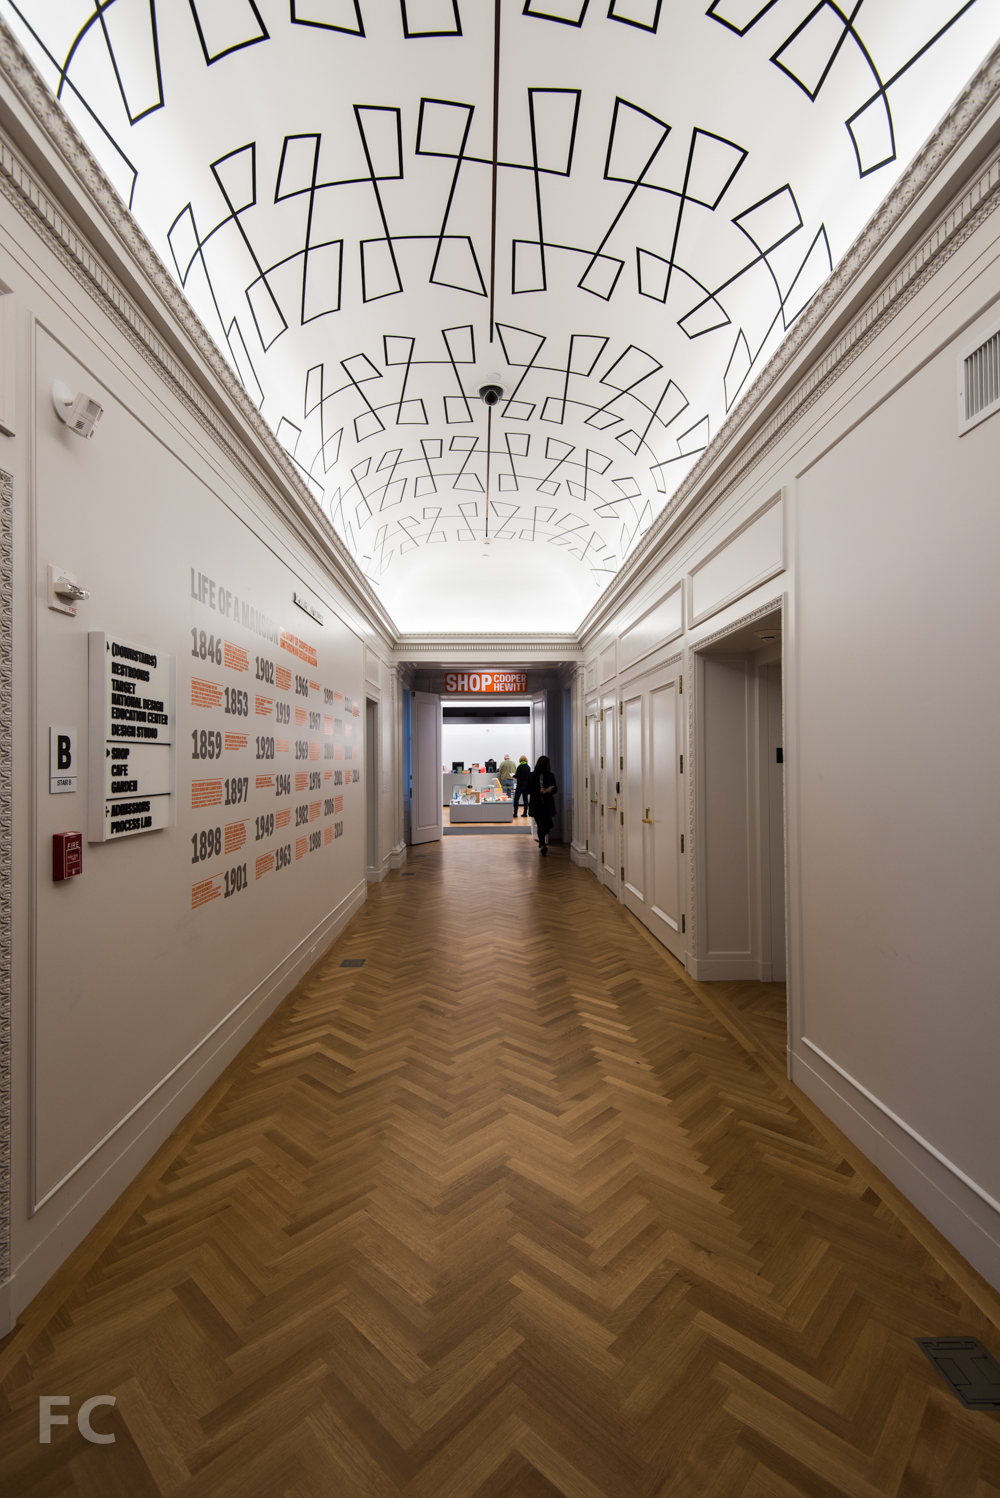 The Rear Hall leading to SHOP Cooper Hewitt.